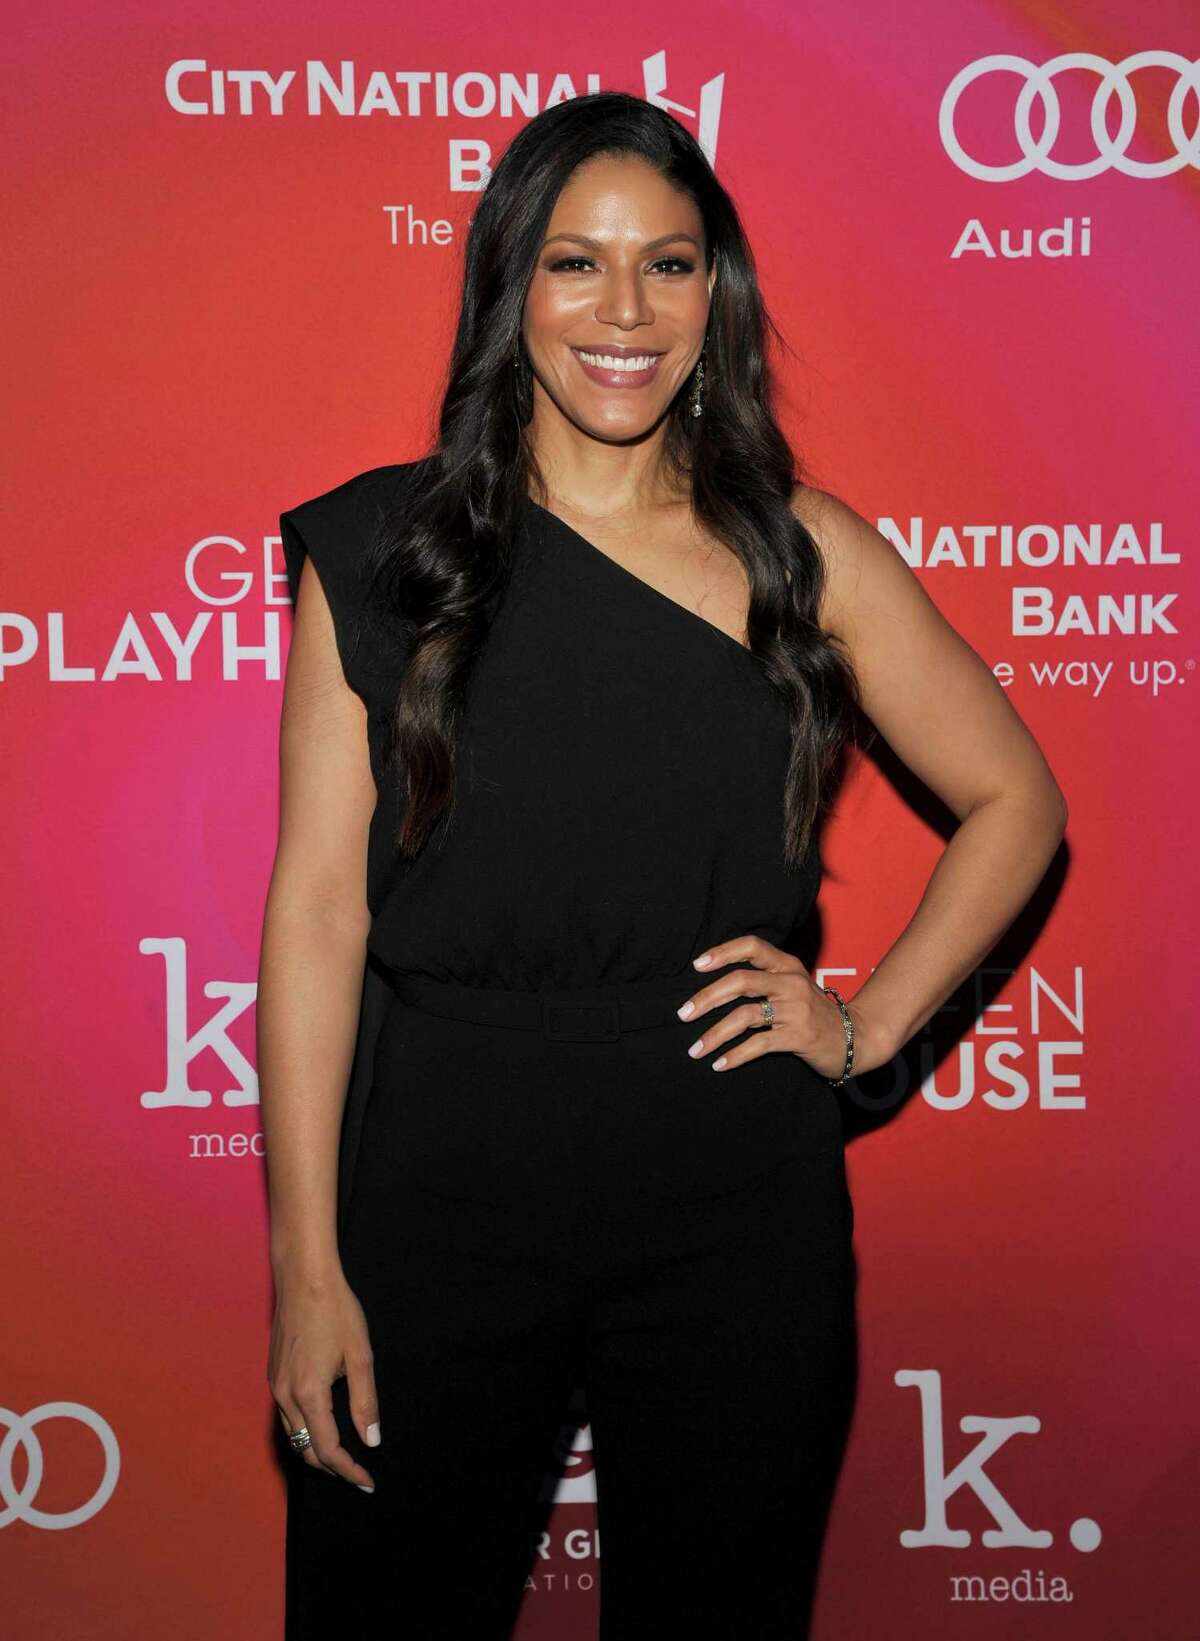 LOS ANGELES, CA - MARCH 19: Merle Dandridge attends Geffen Playhouse's 15th Annual Backstage at the Geffen Fundraiser at Geffen Playhouse on March 19, 2017 in Los Angeles, California. (Photo by John Sciulli/Getty Images for Geffen Playhouse)